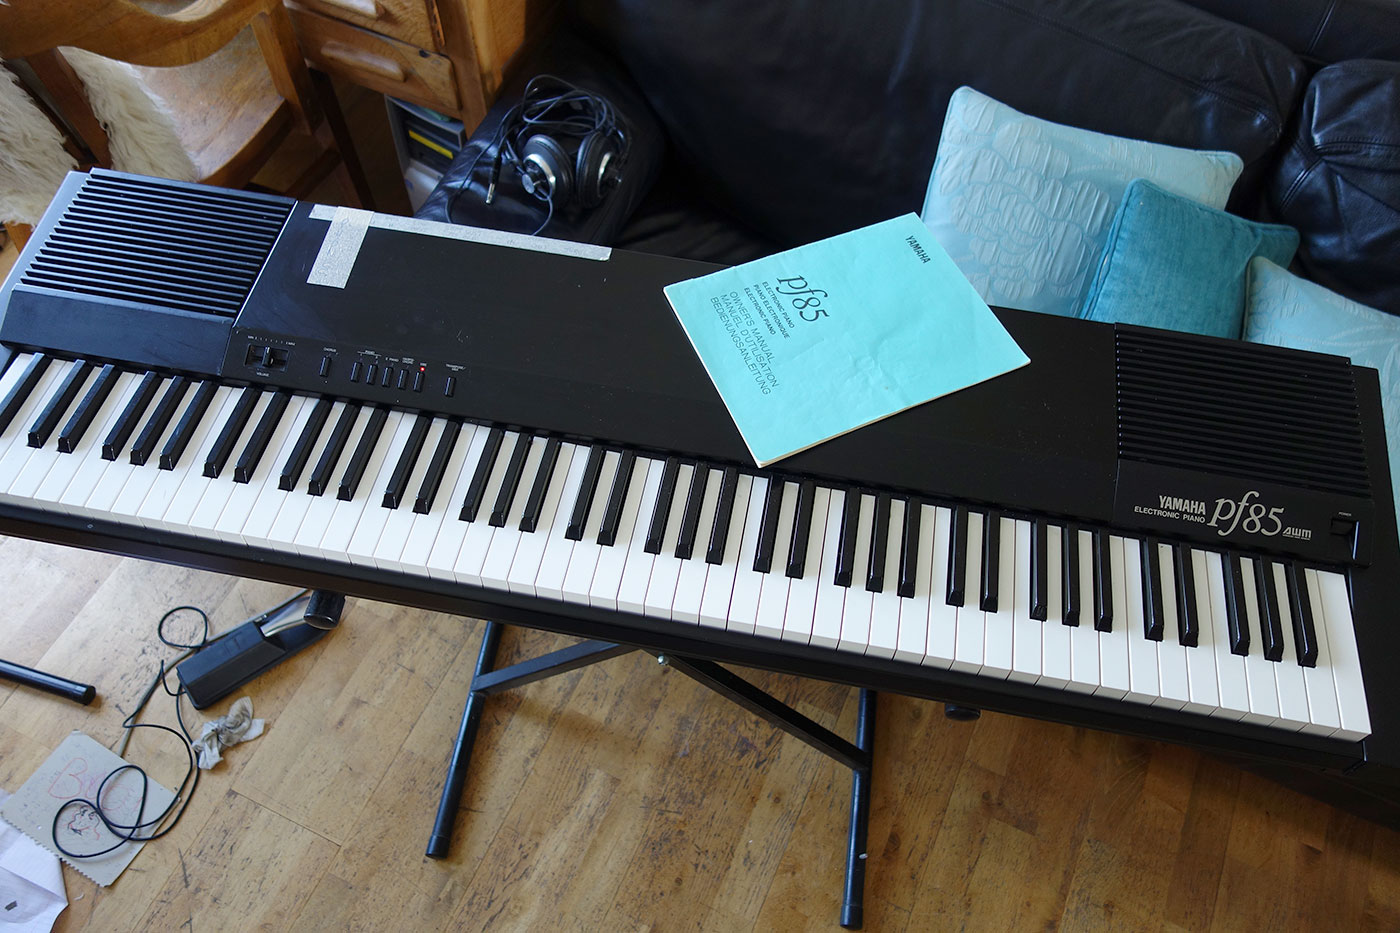 For Sale: OT: Yamaha PF85 + Technics C300 Digital Piano